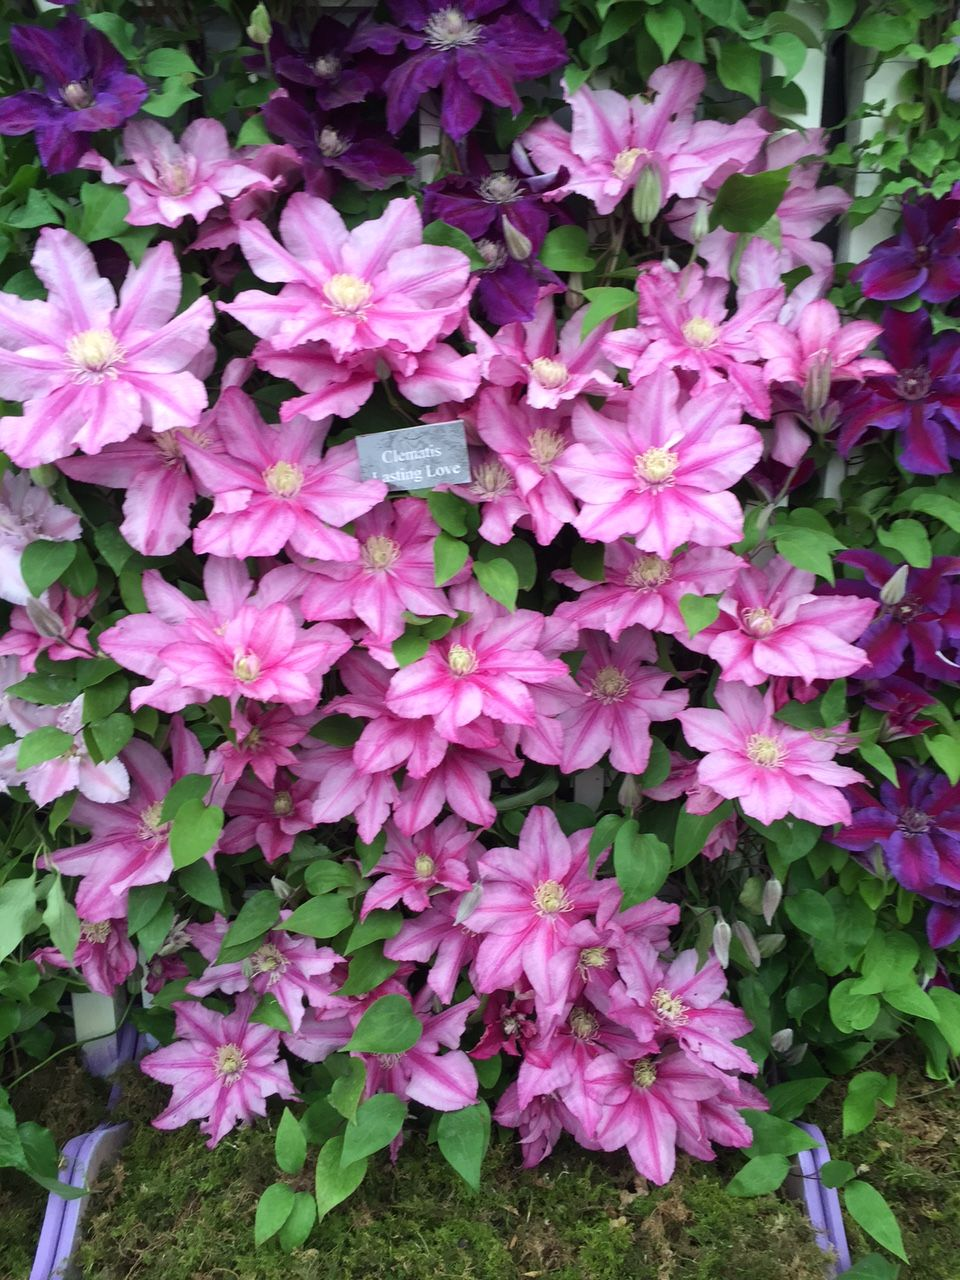 Clematis Lasting Love